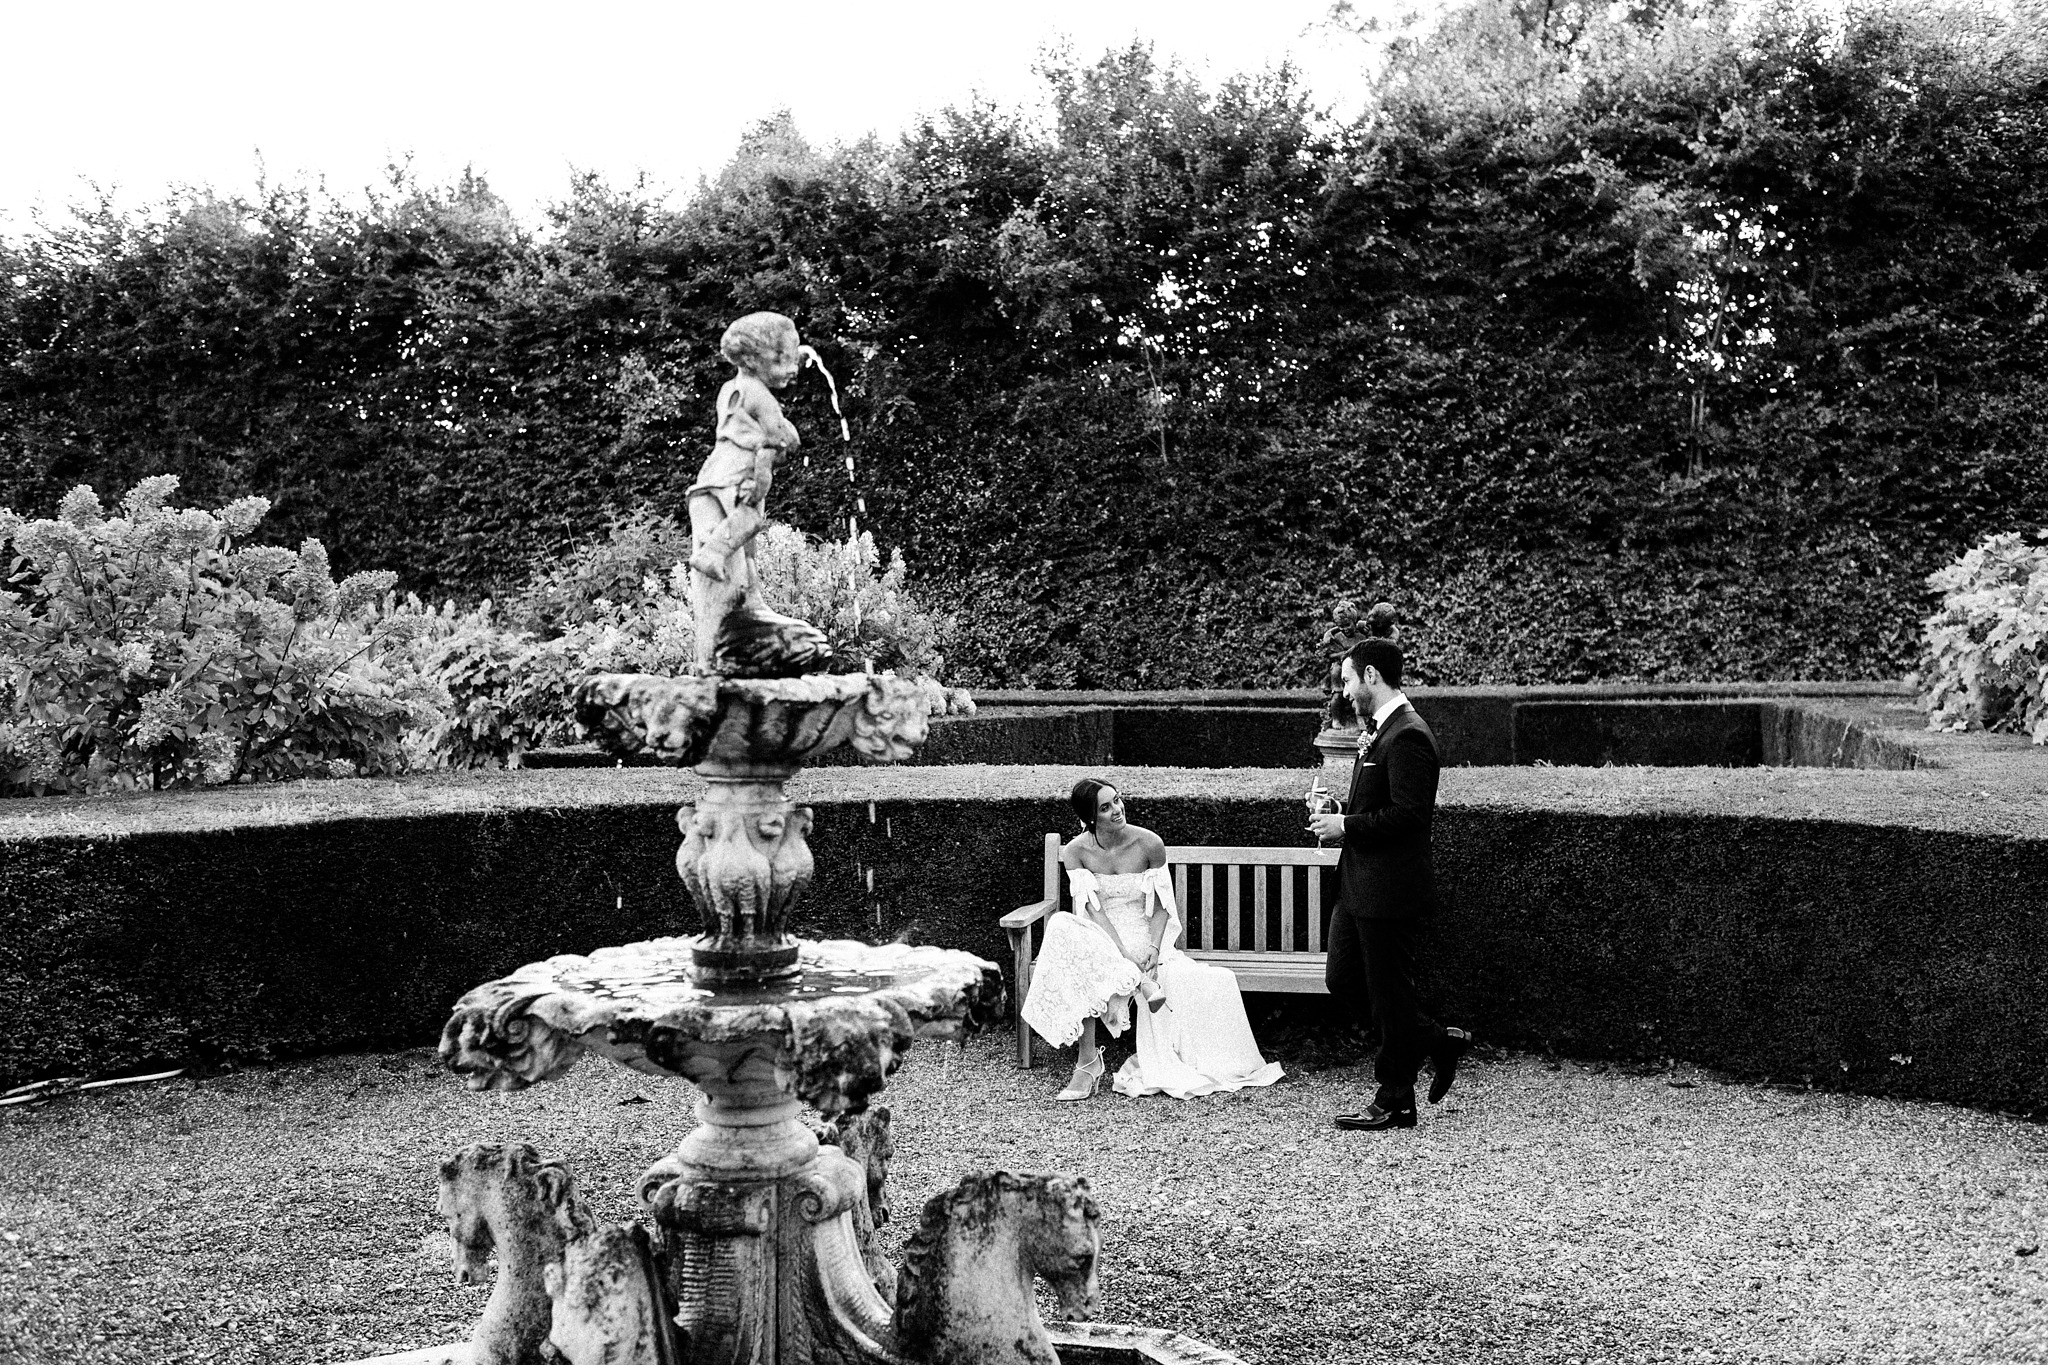 chateau-wedding-france-chanel-eric-as-seen-on-vogue-with-sarah-falugo-photographer_0177